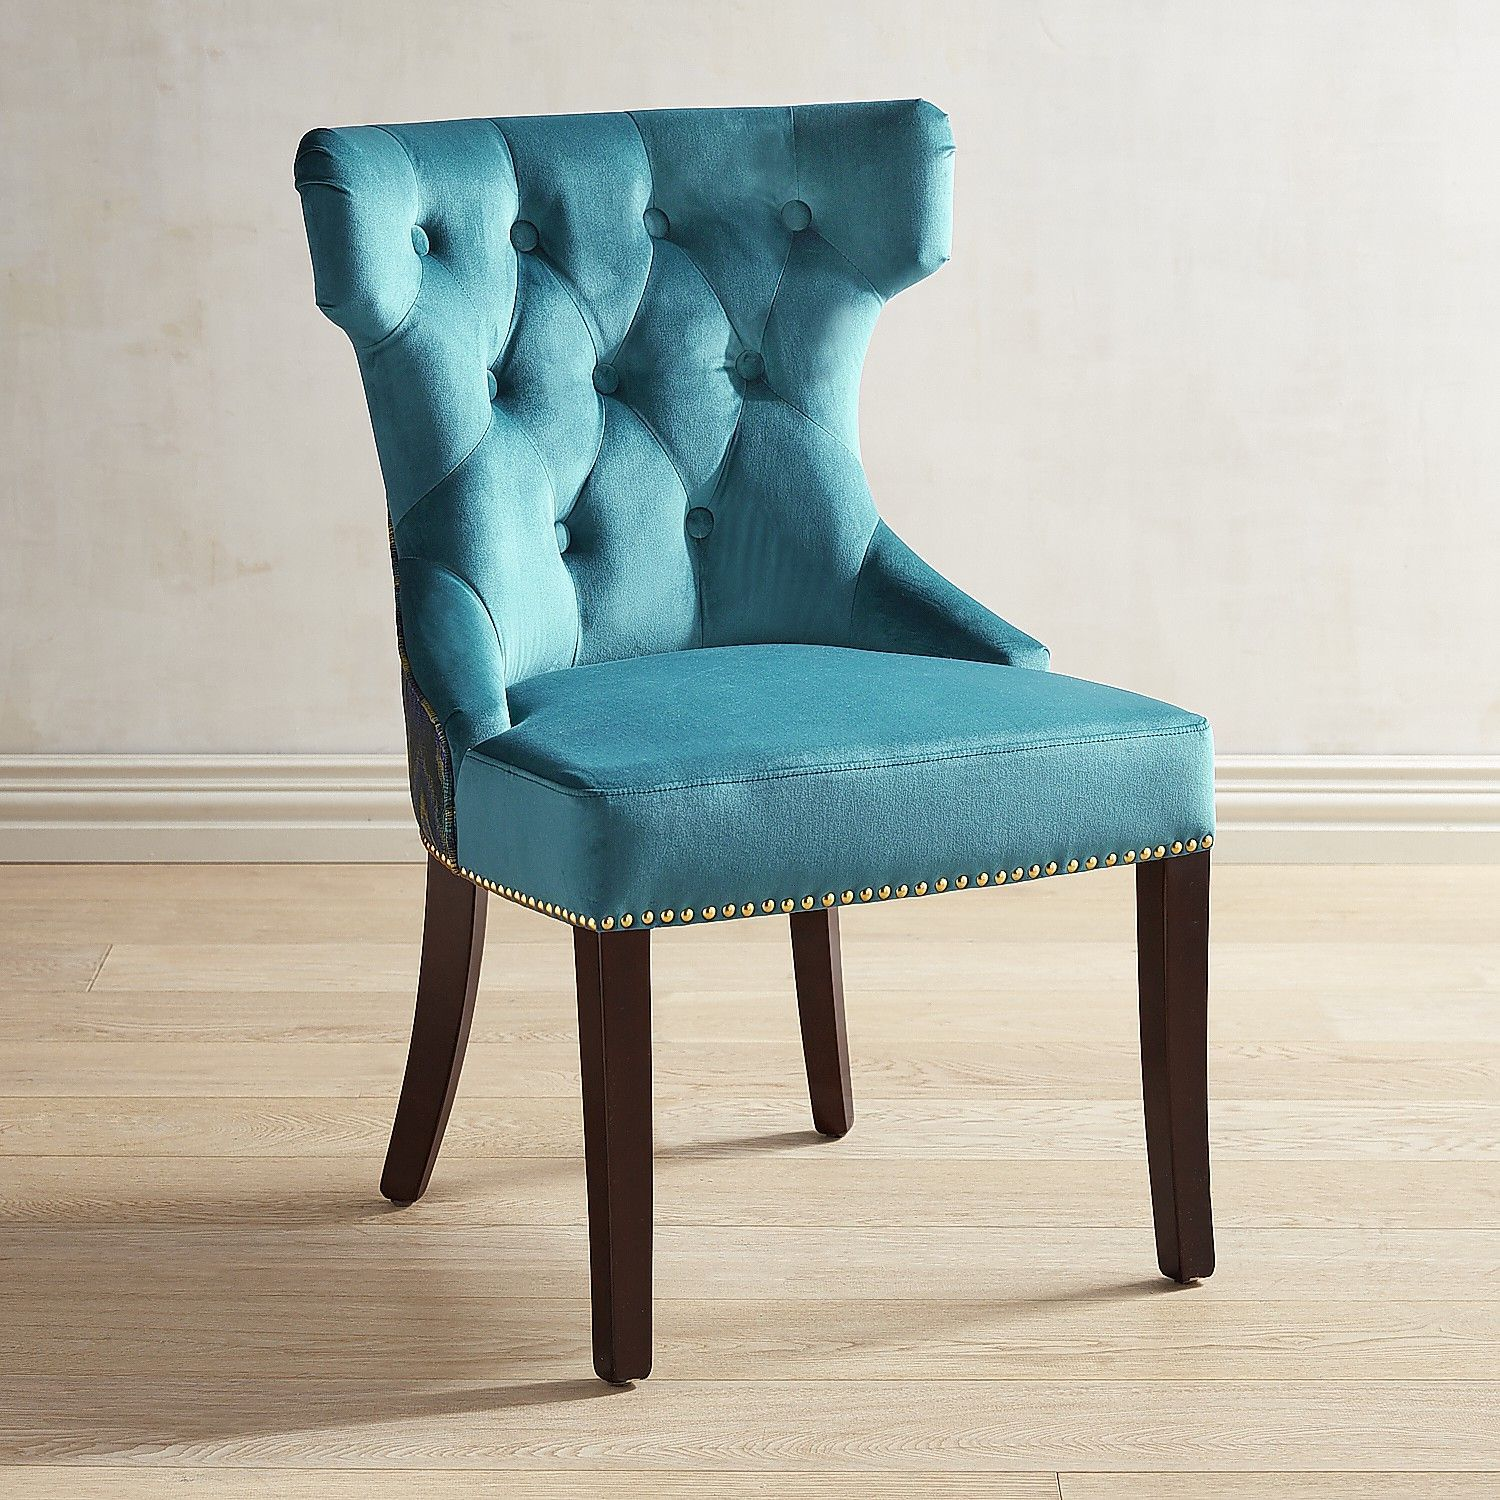 Hourglass Plume-Teal Dining Chair with Espresso Wood in 2018 ...